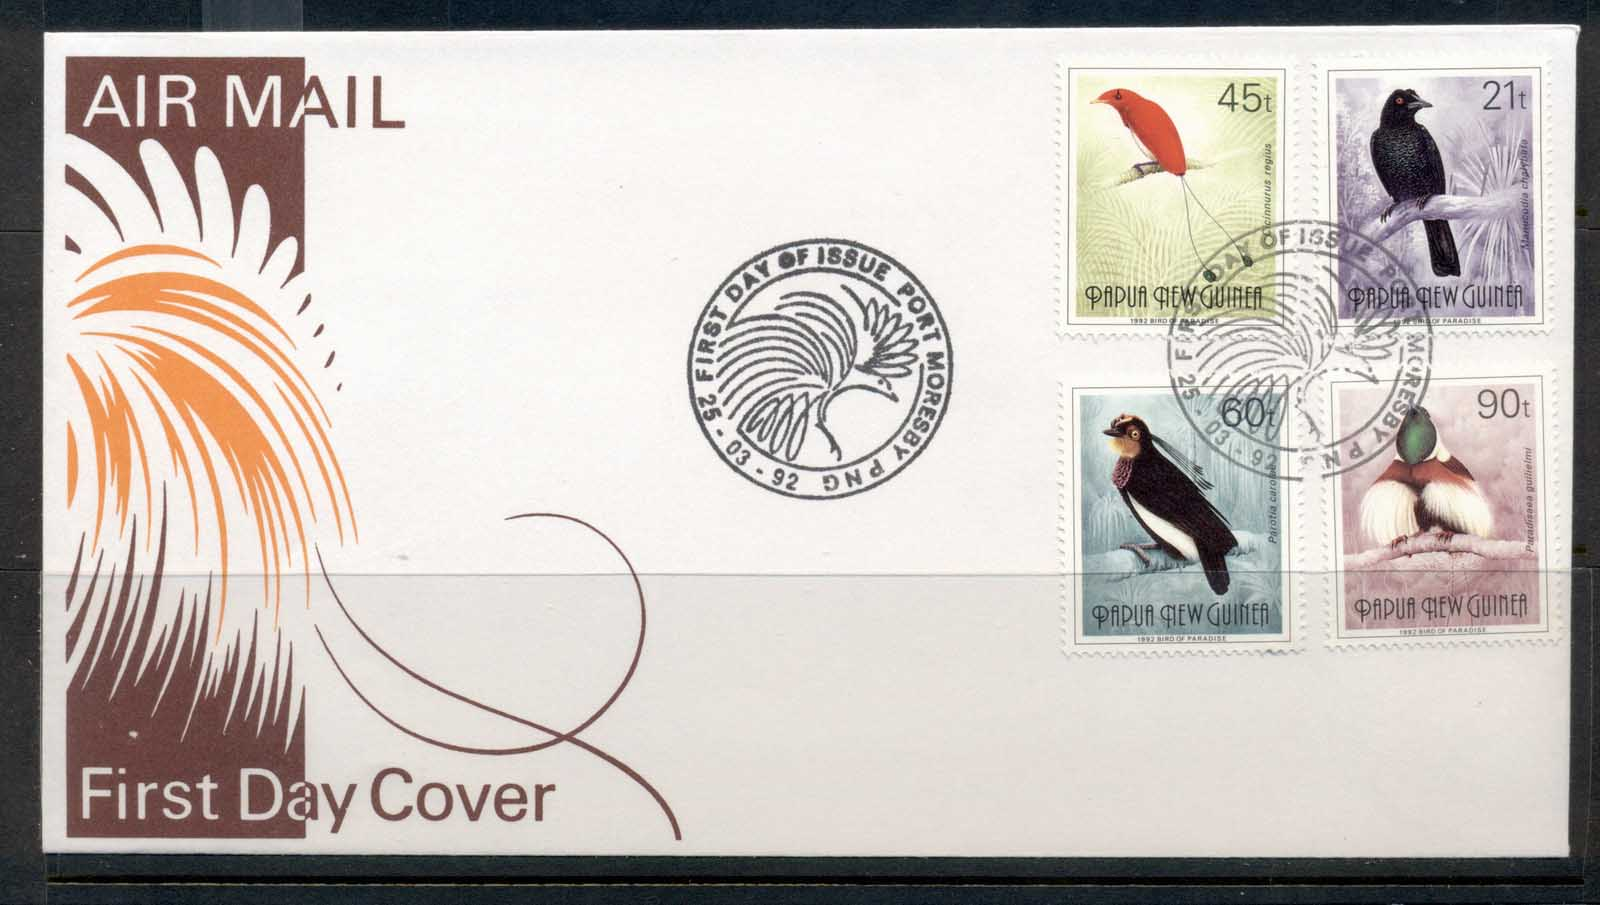 PNG 1992 Birds of Paradise II (4) (21t,45t,60t,90t) FDC